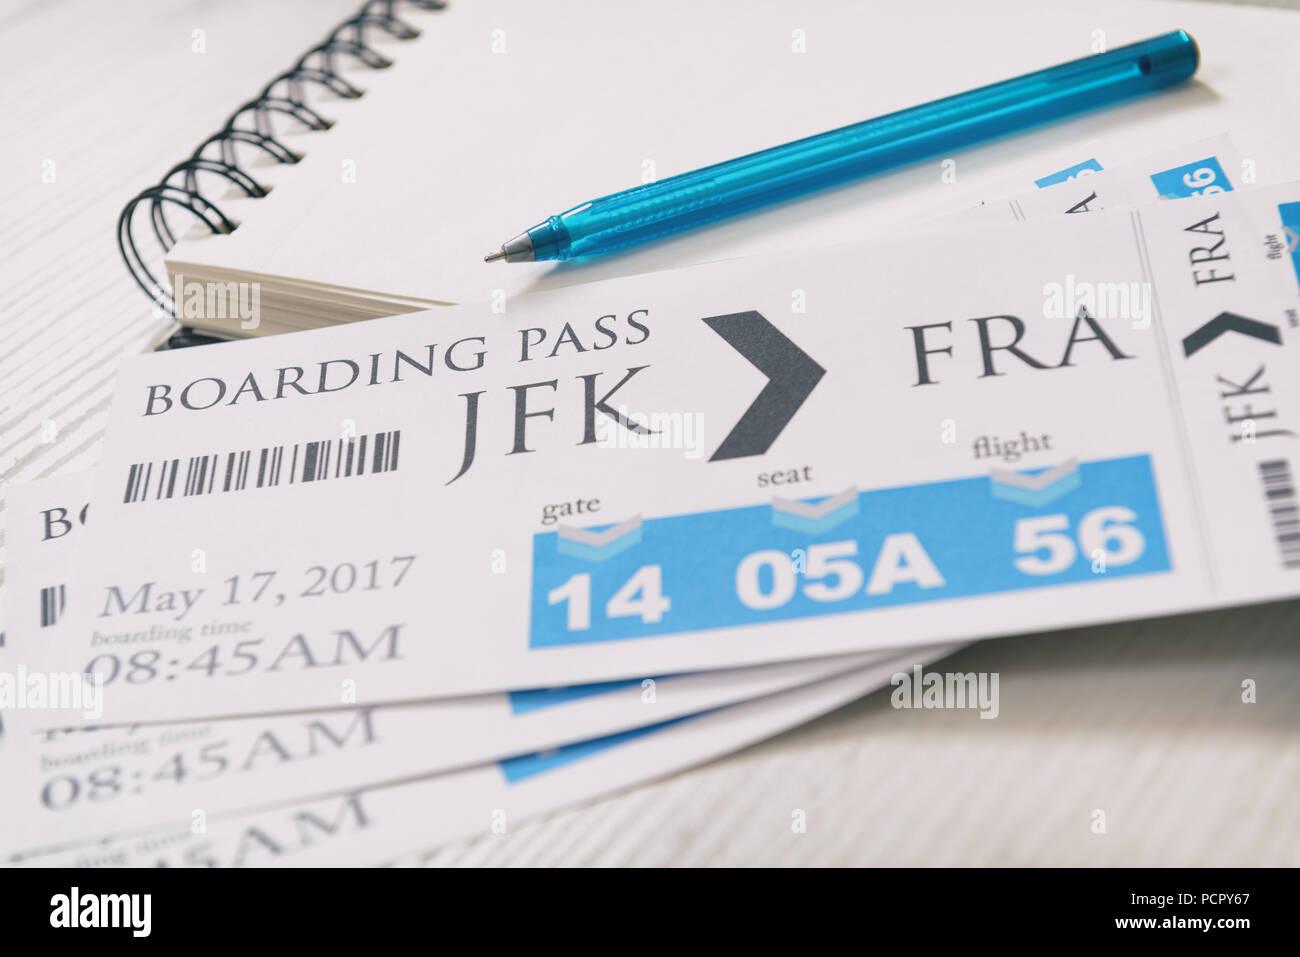 Airline boarding pass tickets with notebook and pen - Stock Image